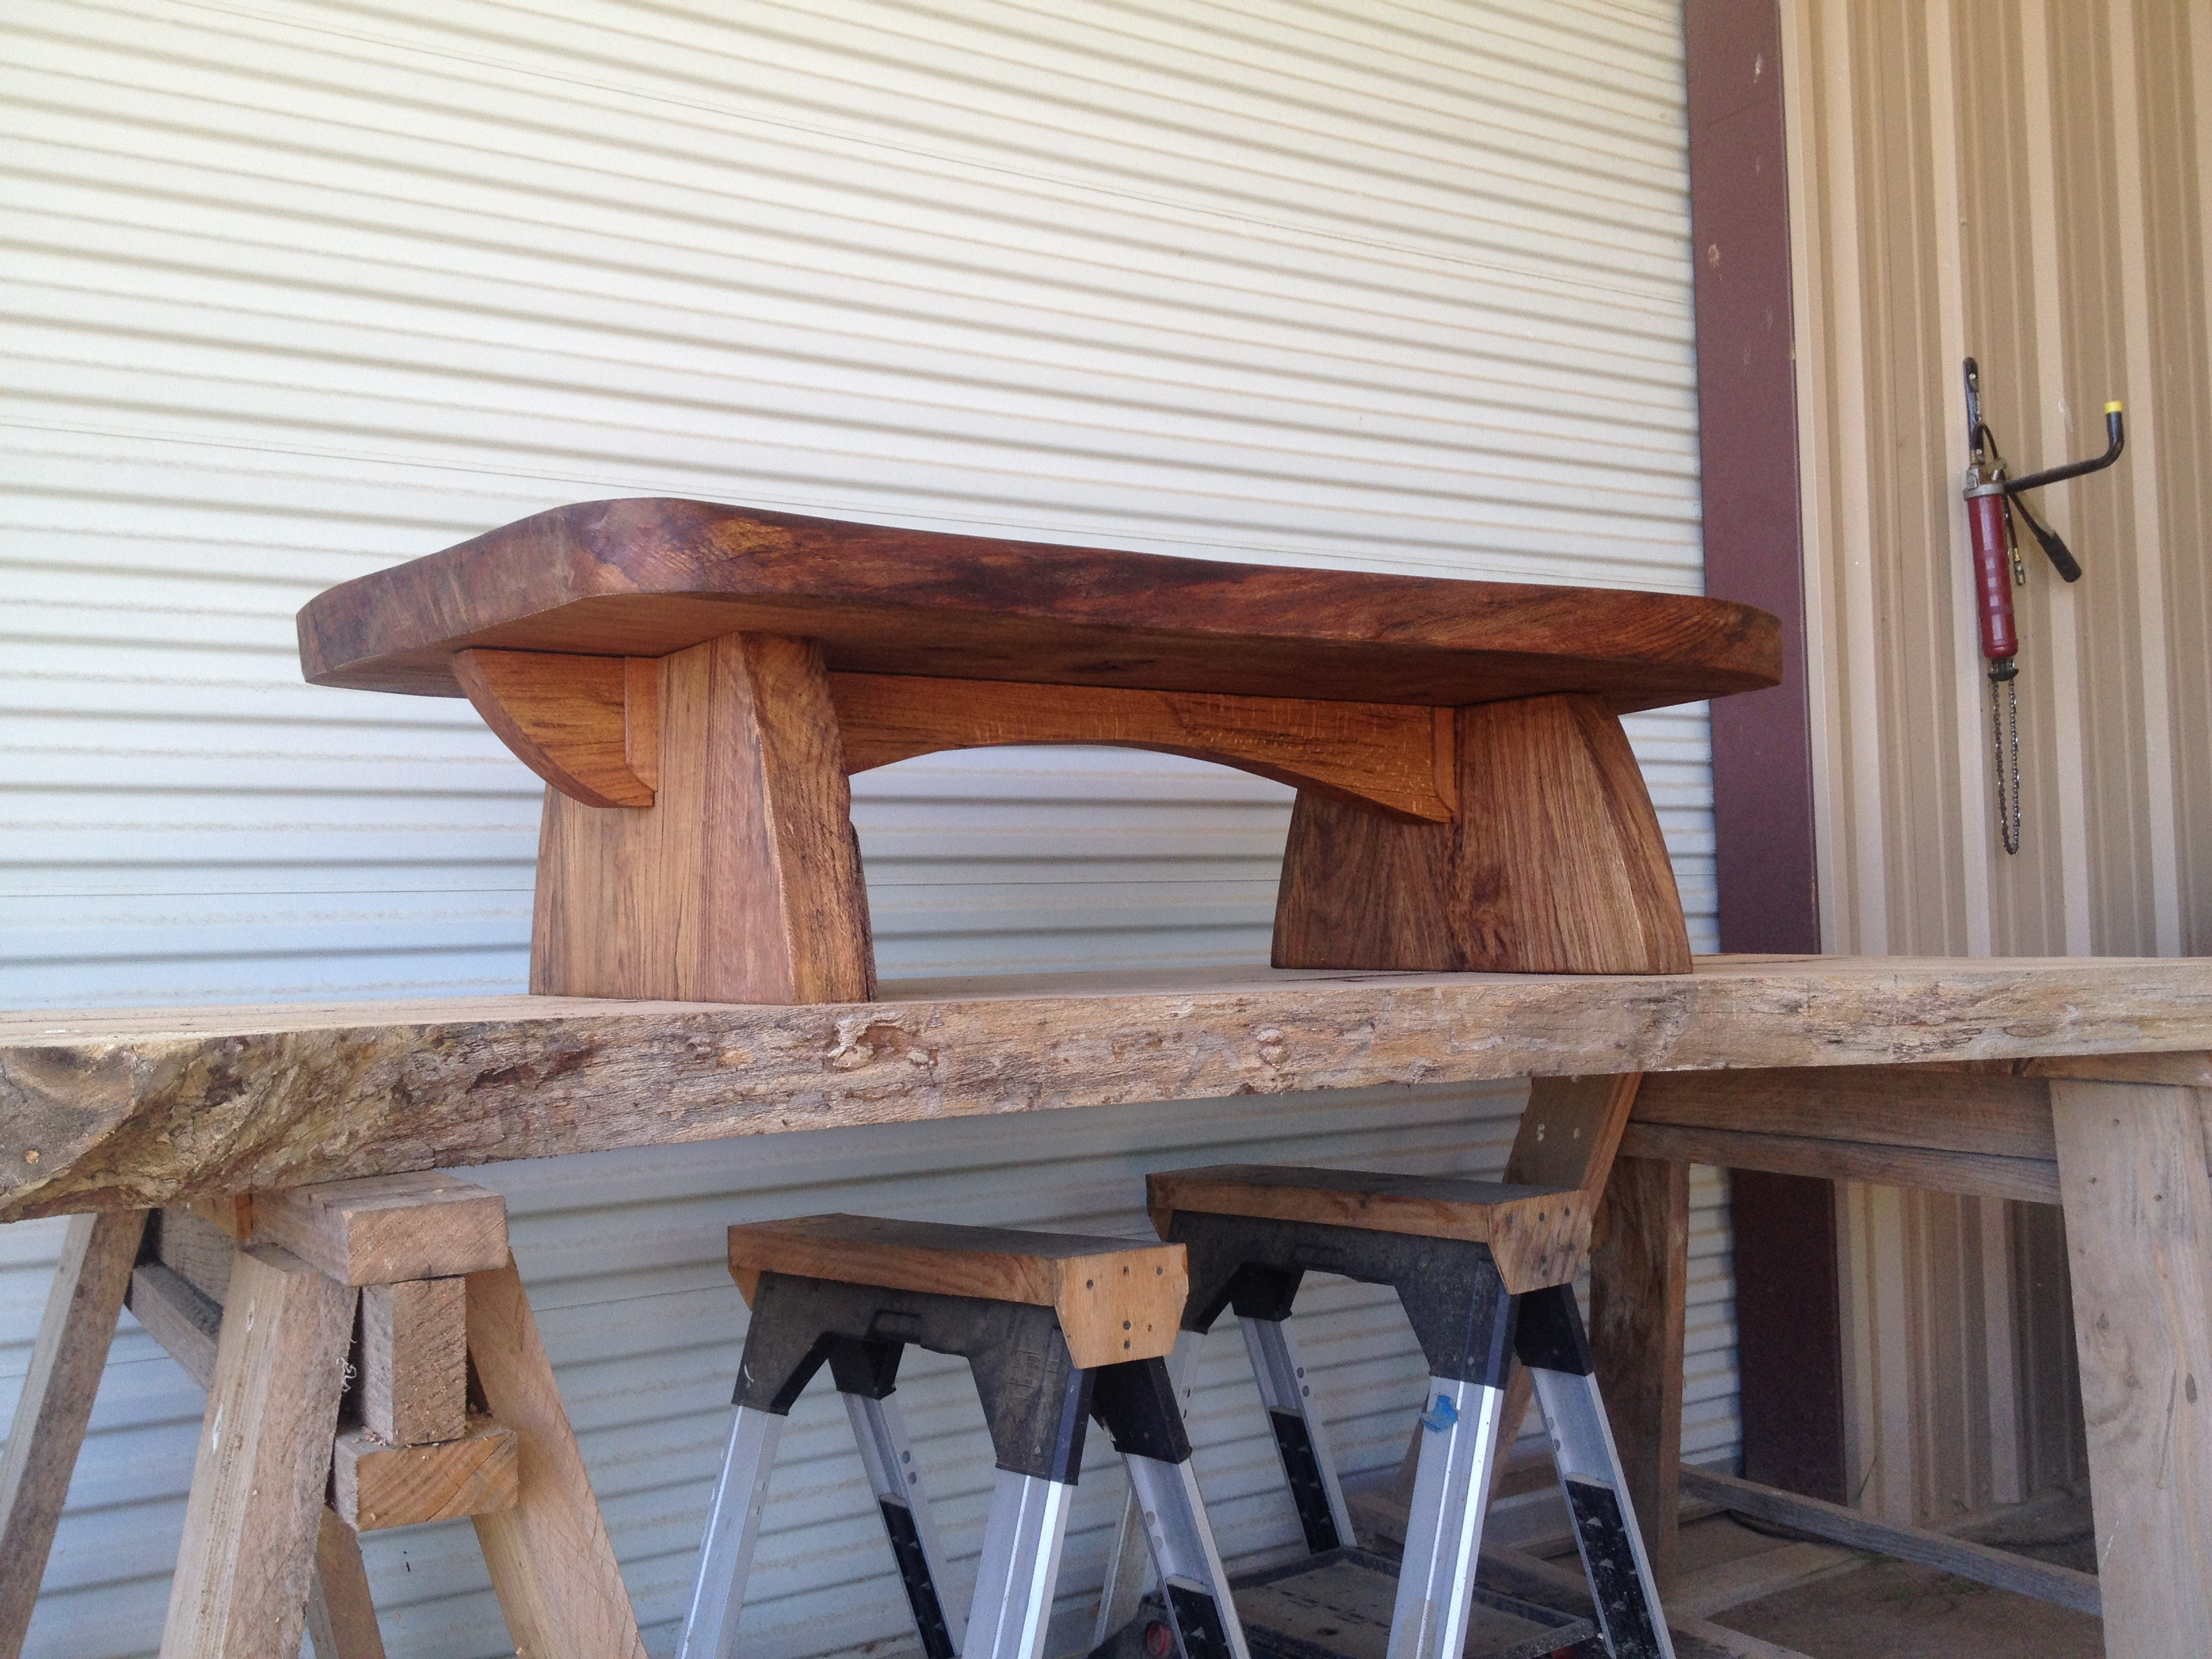 Rustic coffee table made from sawmill slabs